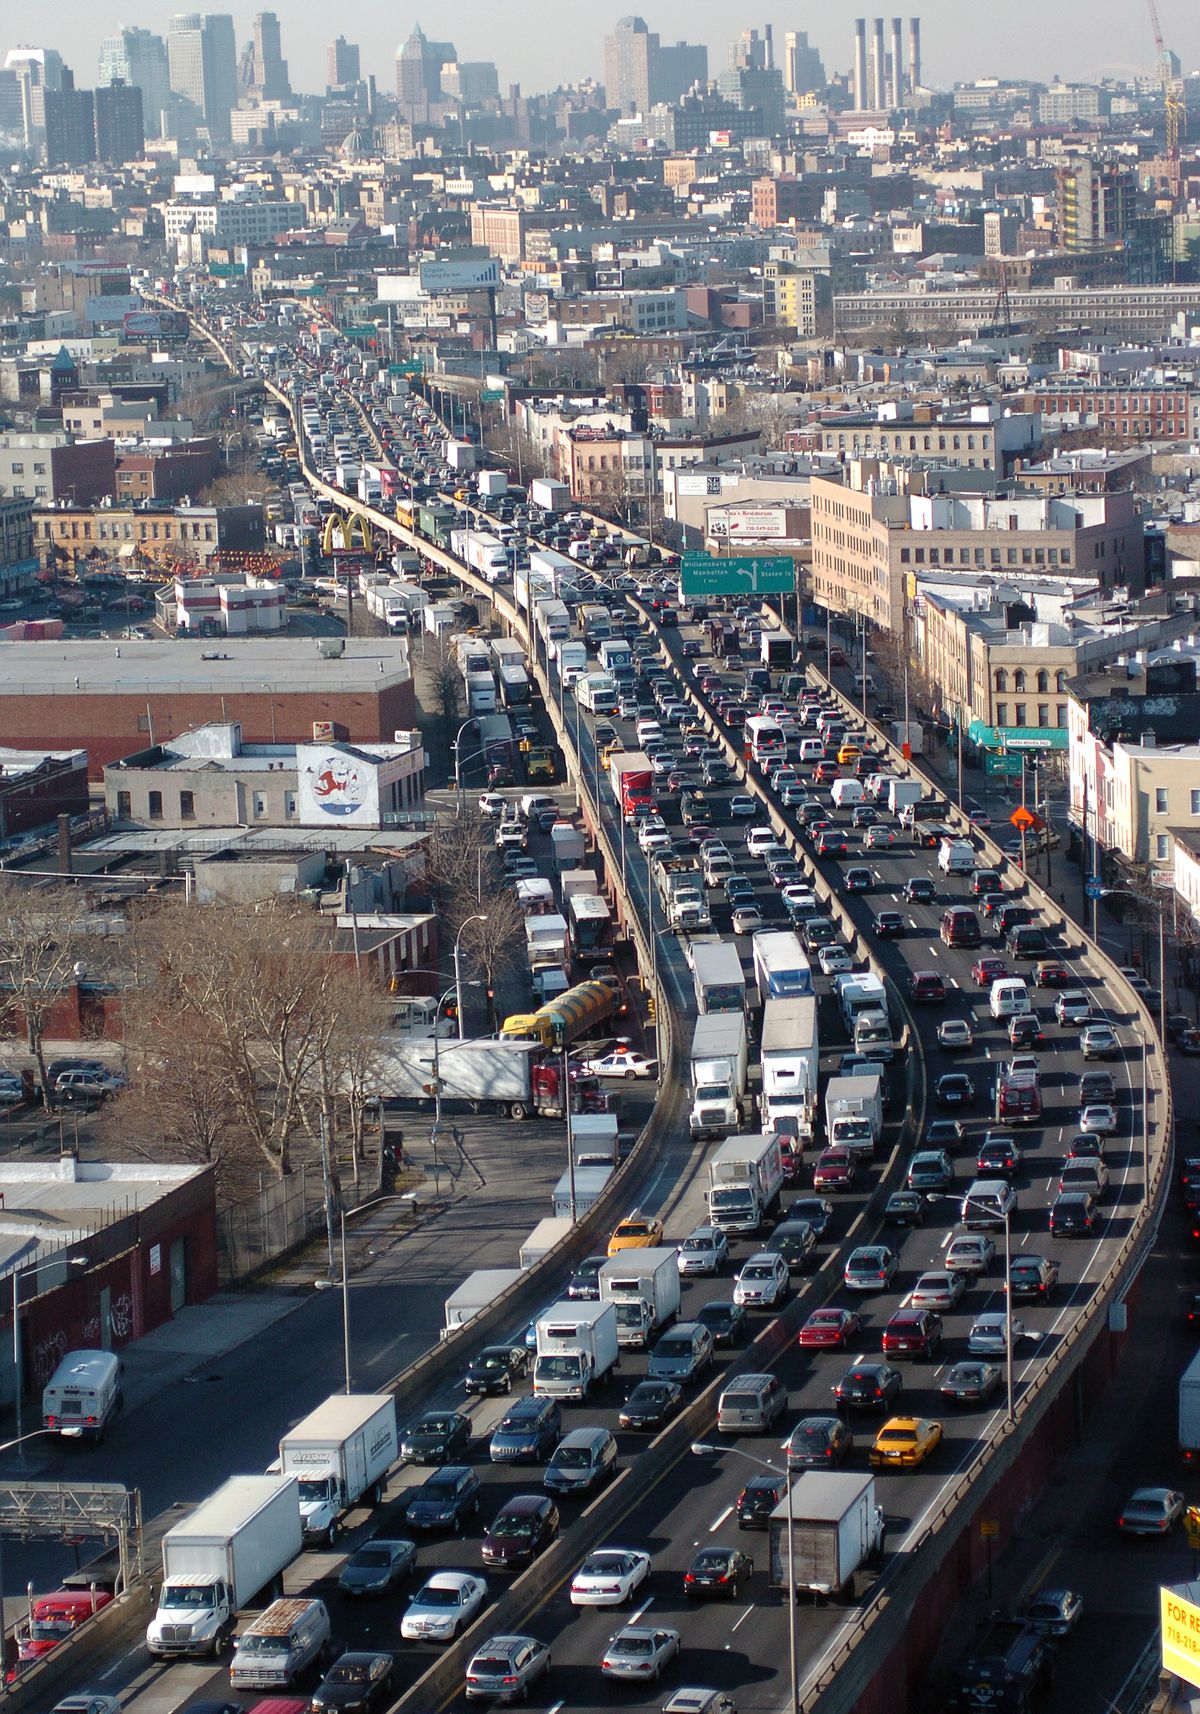 An aerial view of the Sunset Park portion of the Brooklyn Queens Expressway packed with bumper to bumper car and truck traffic. The traffic jam seems to stretch on for miles in the background.